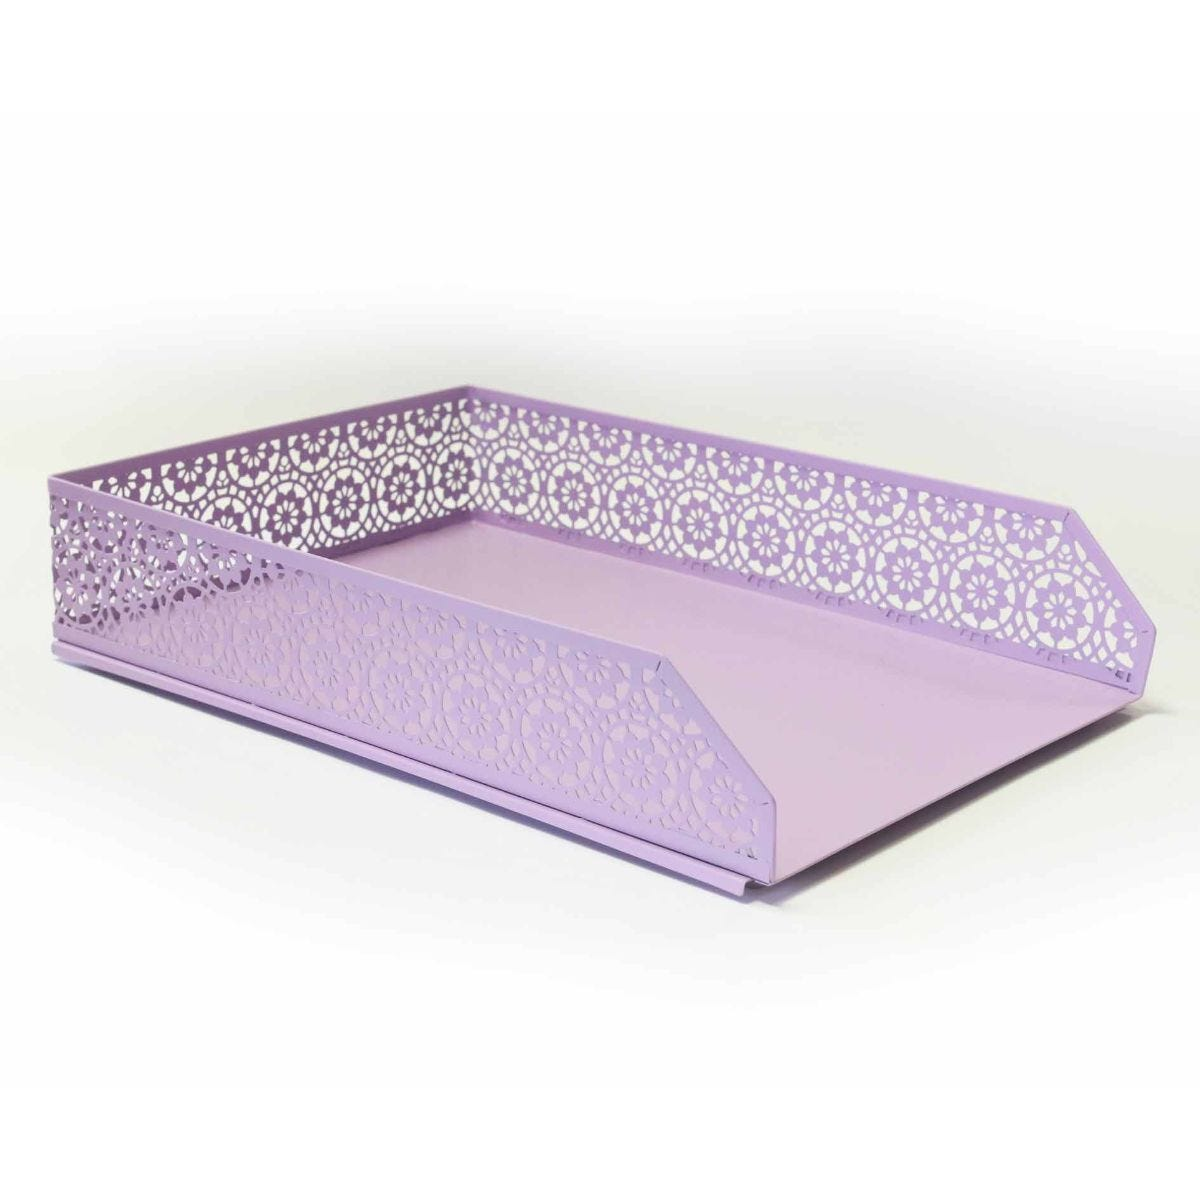 Ryman Floral Metal Letter Tray A4 Pastel Purple